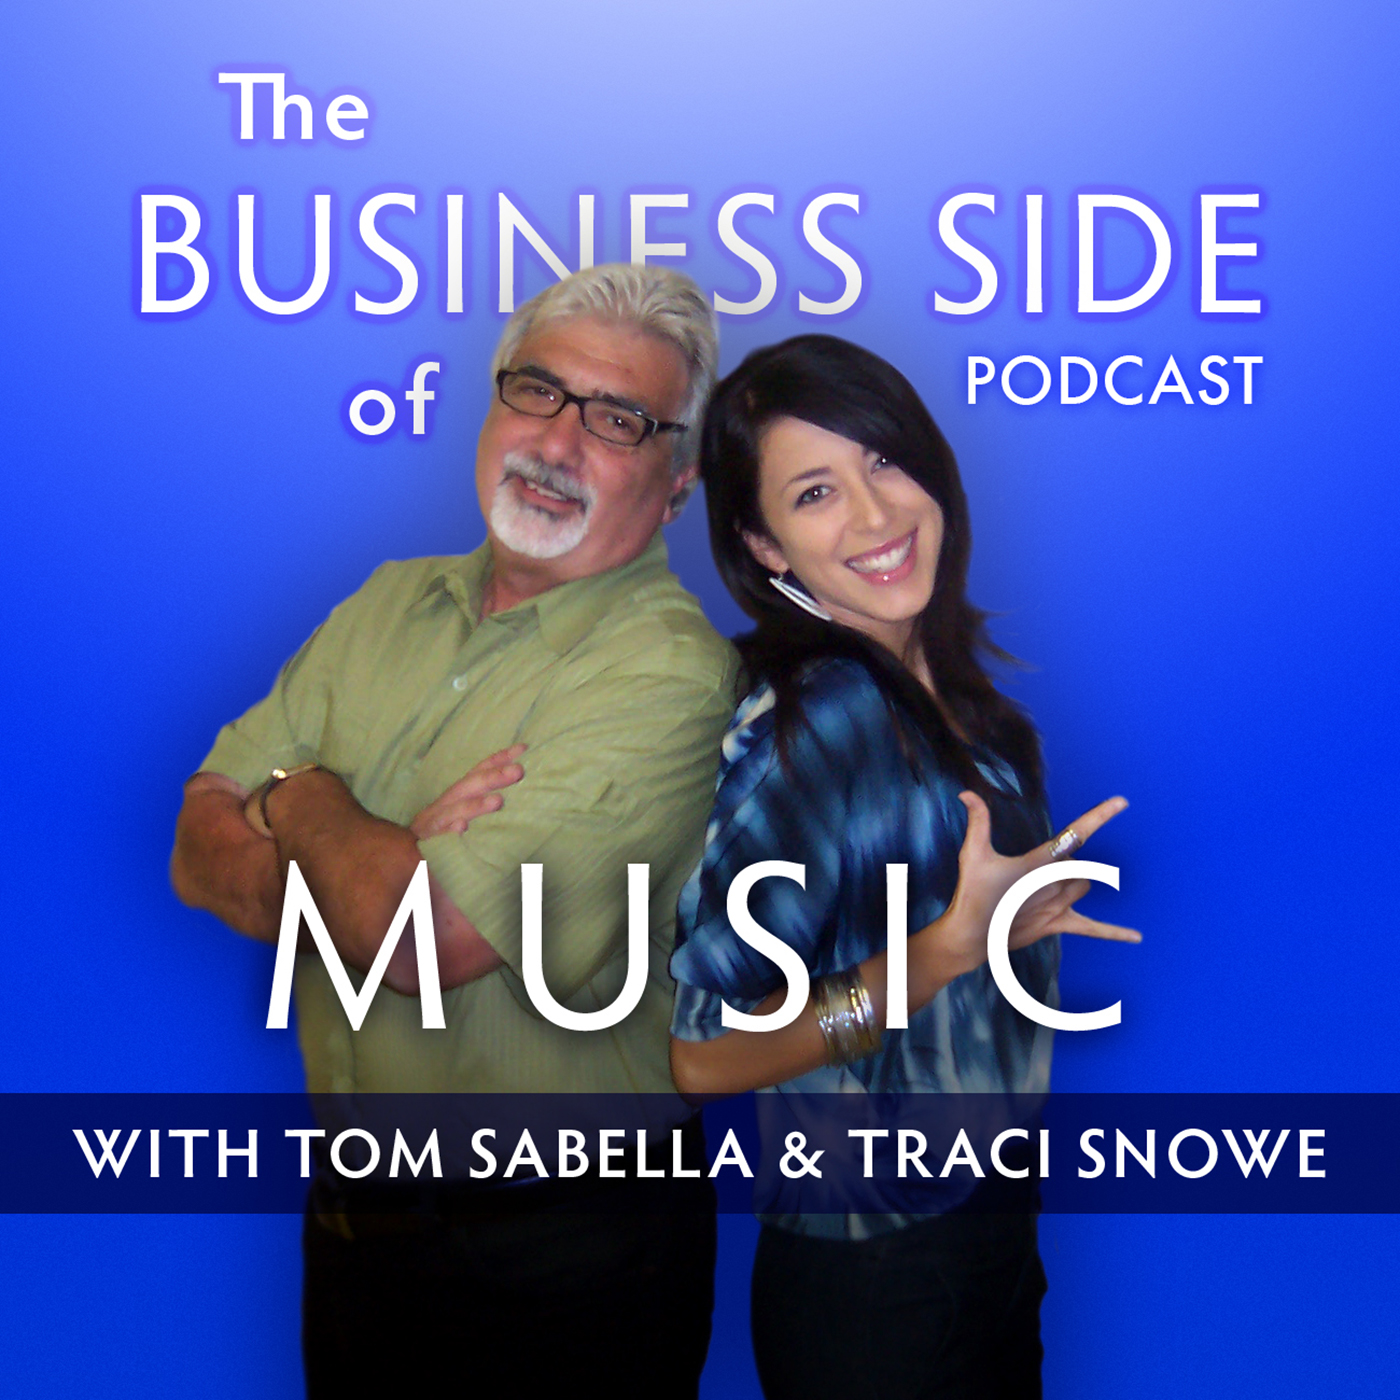 The Business Side of Music Podcast show image